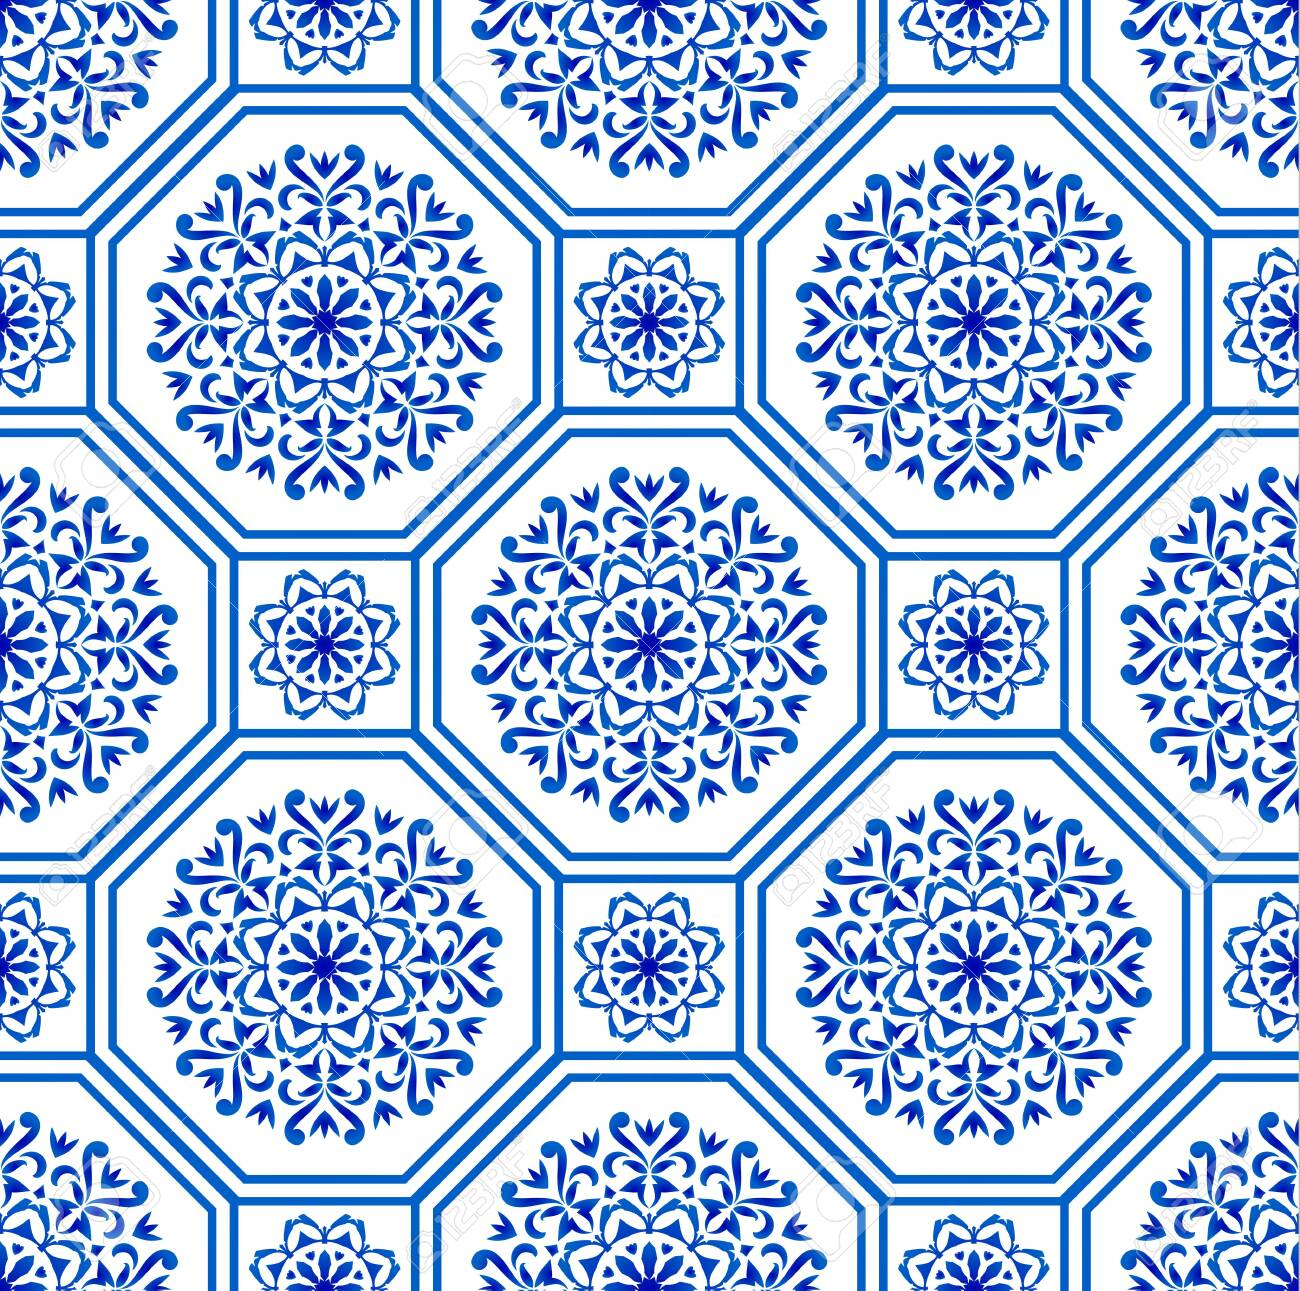 decorative Hexagon tile design patchwork portuguese moroccan and motif style, luxury oriental blue and white seamless modern pattern, ceramic background, geometric floral wallpaper vector illustration - 123715667